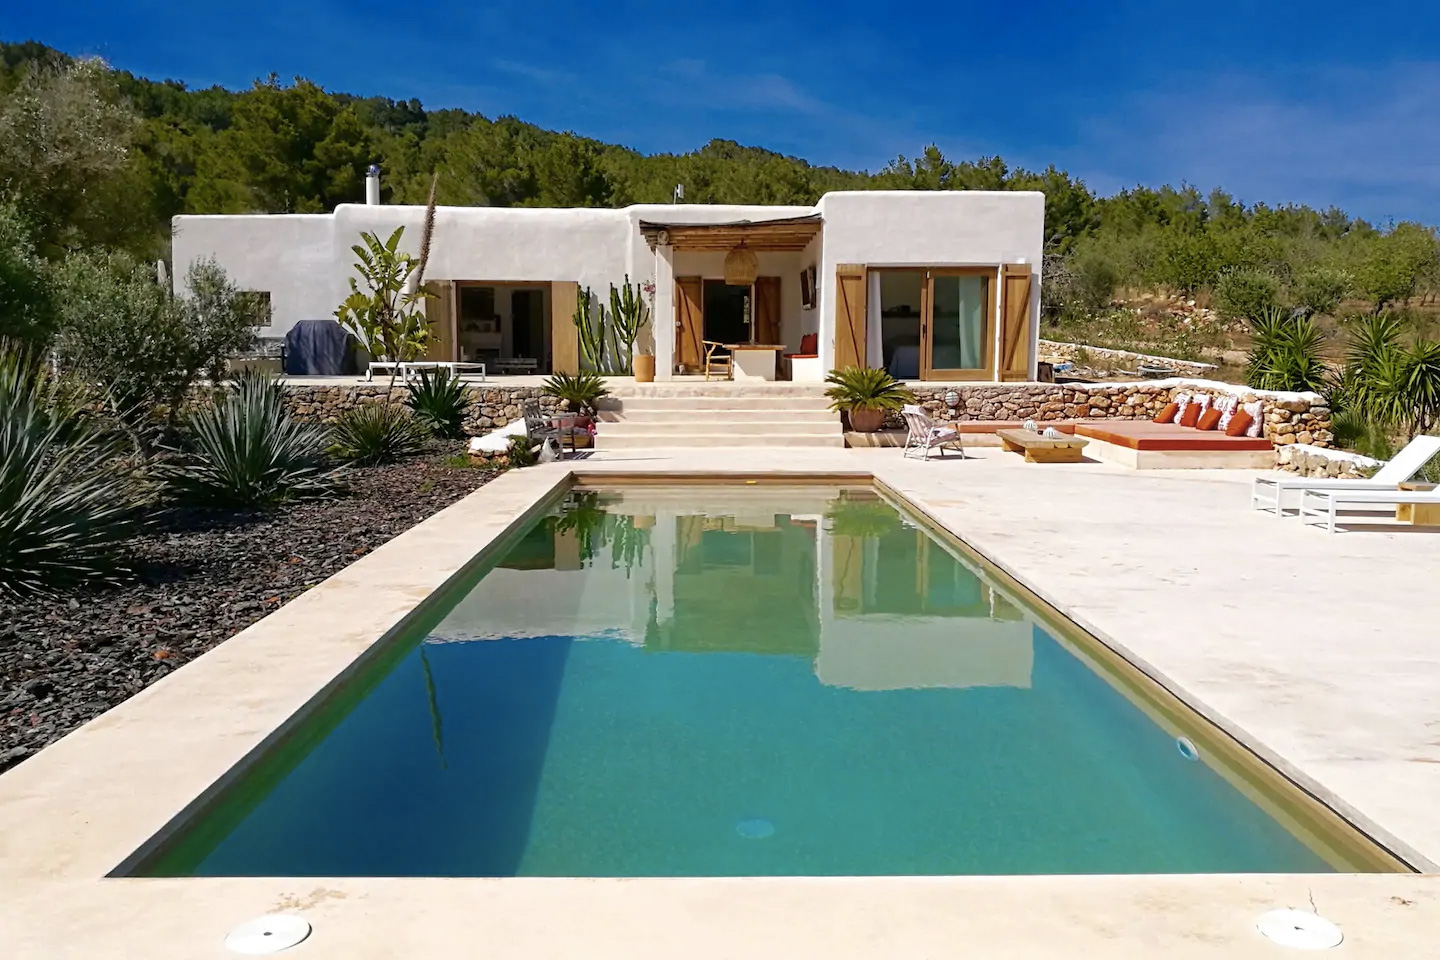 Ibizan holiday villas where you can catch the last summer rays: Countryside finca